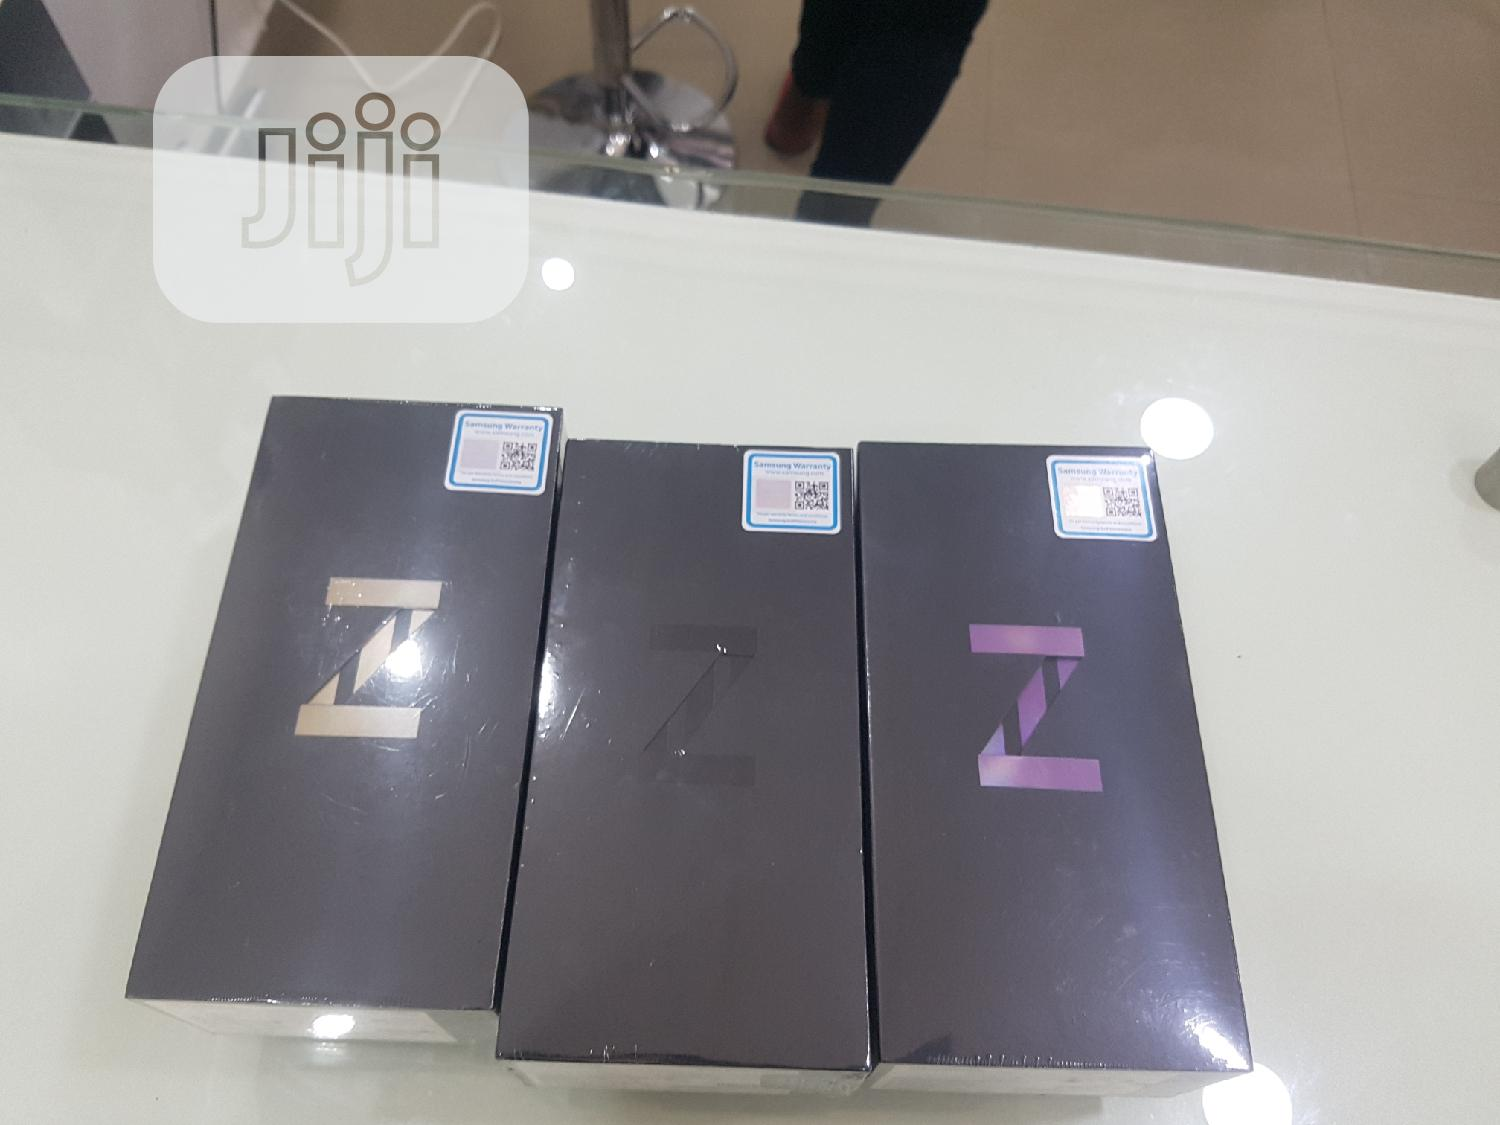 New Samsung Galaxy Z Flip 256 GB | Mobile Phones for sale in Wuse 2, Abuja (FCT) State, Nigeria